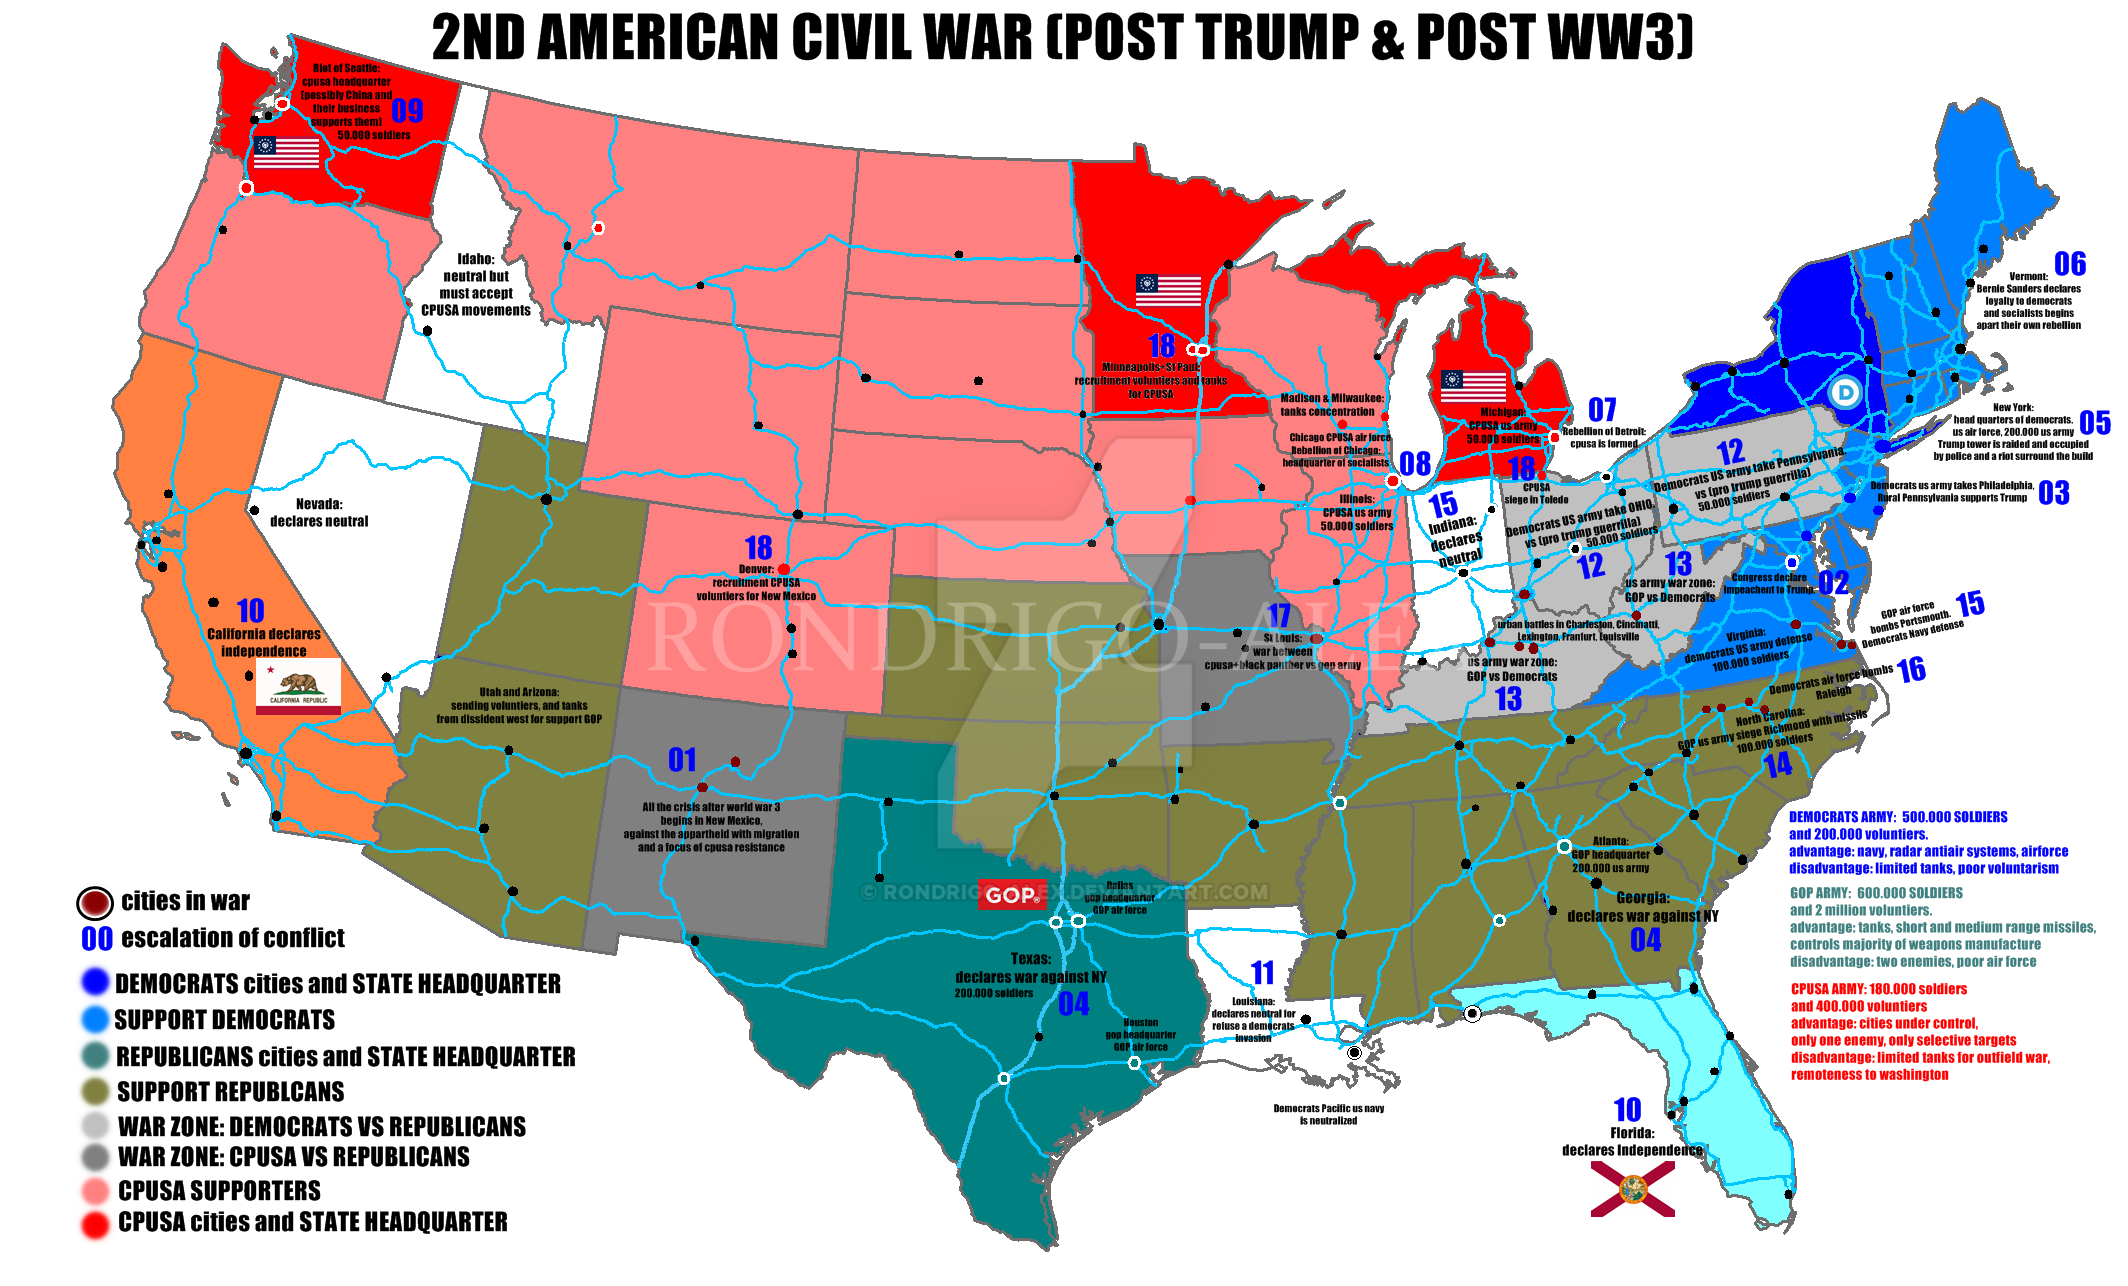 2nd american civil war (post world war 3) by rondrigo-alex on DeviantArt